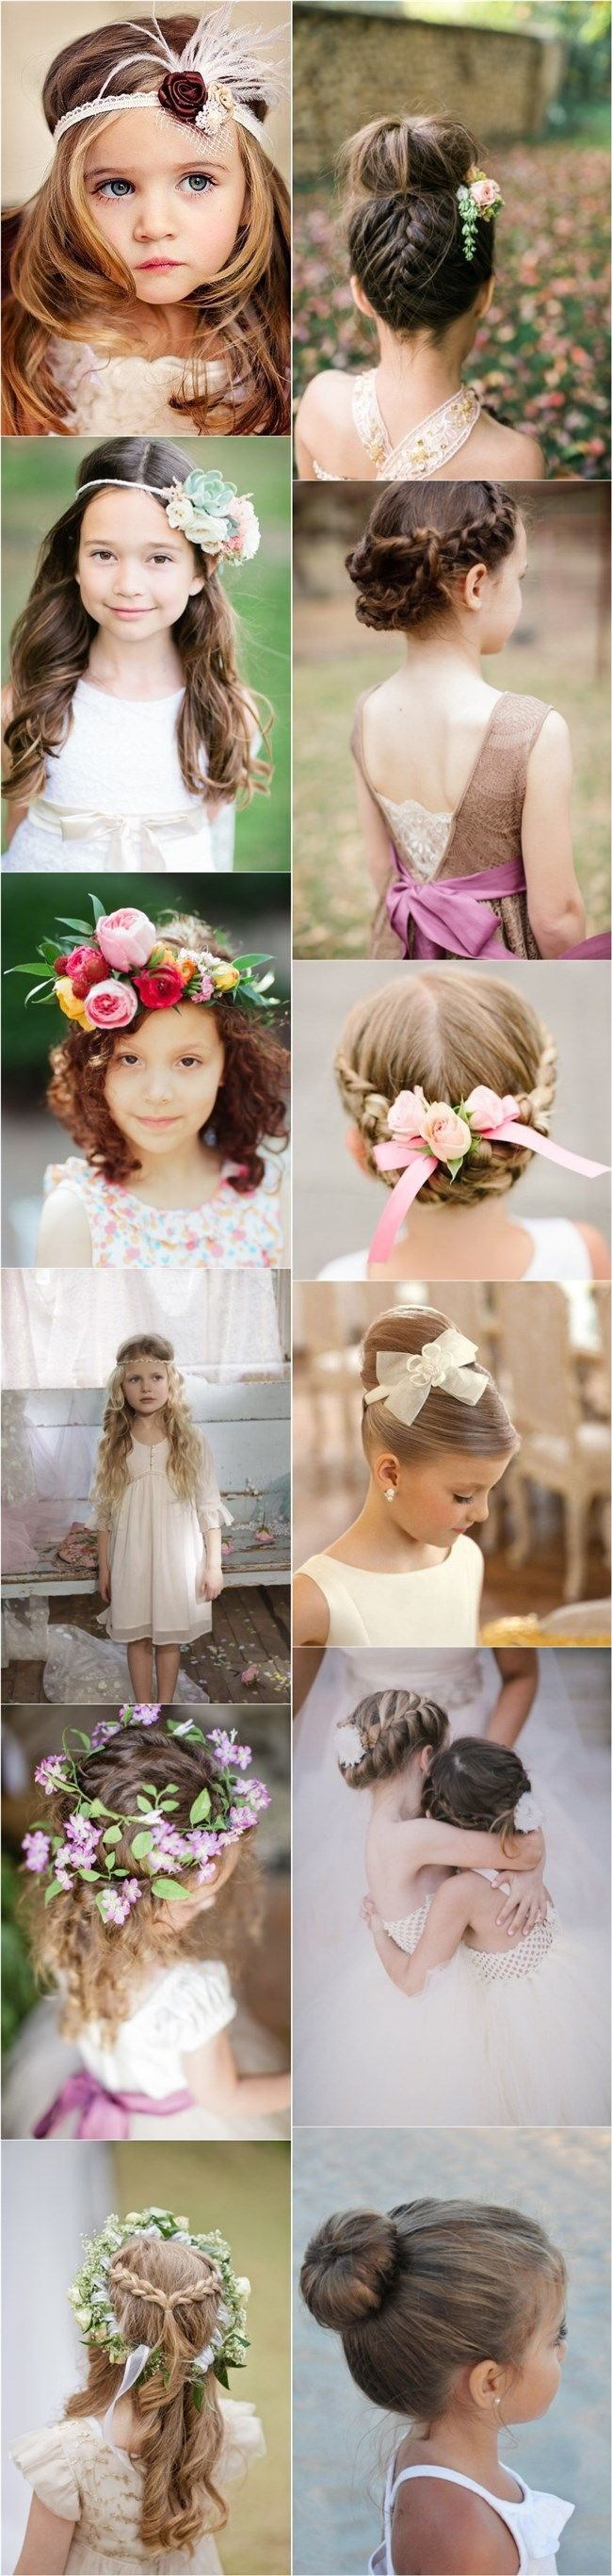 45 Beautiful Christmas Hairstyles For Your Little Girl Hairstyles For Little Girls